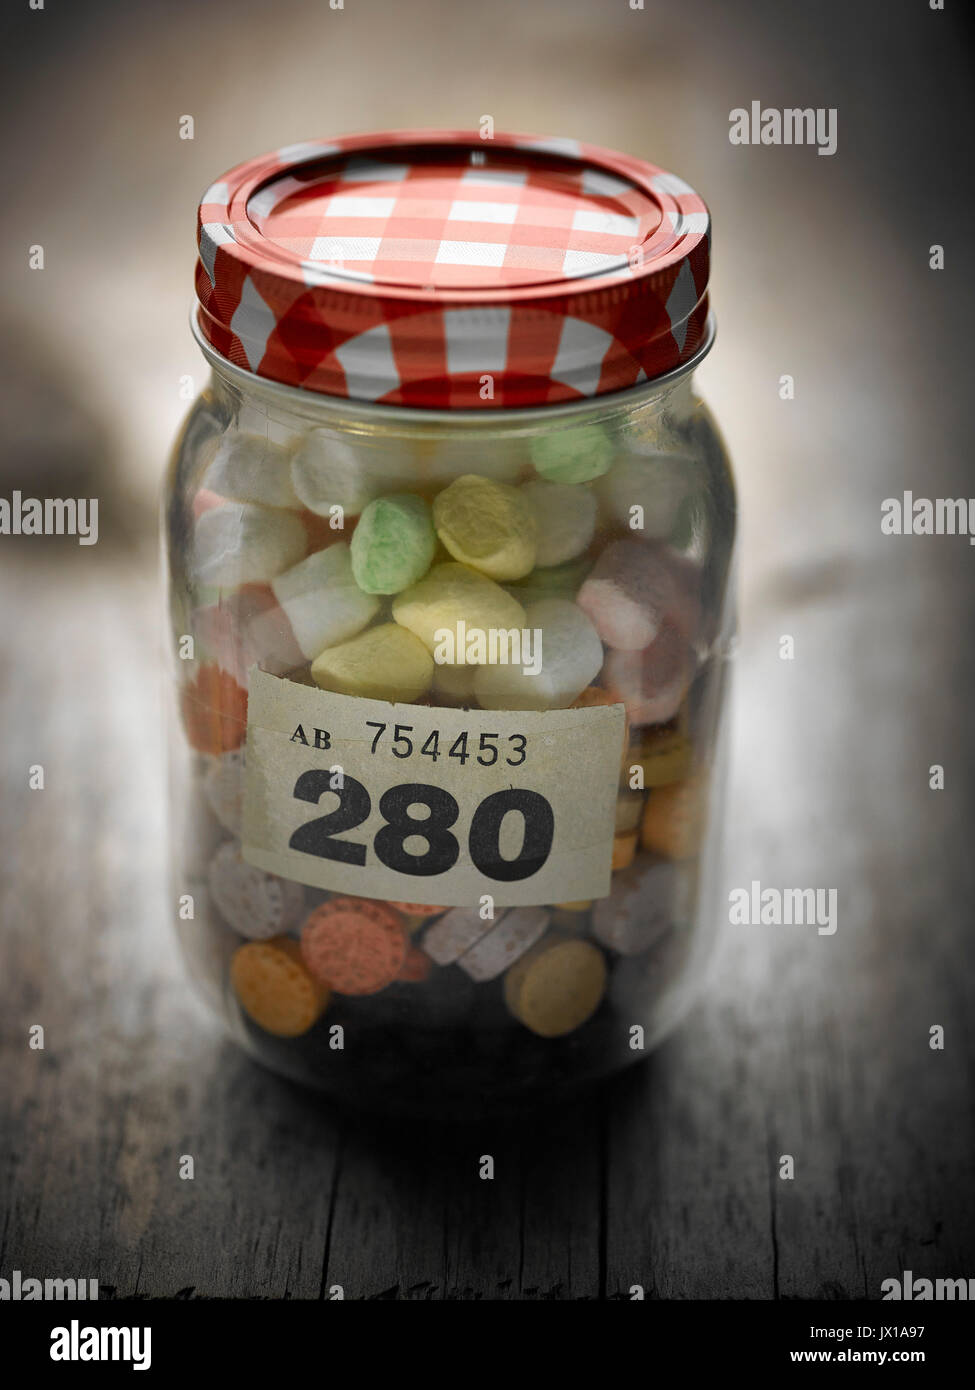 Bottle Raffle High Resolution Stock Photography And Images Alamy